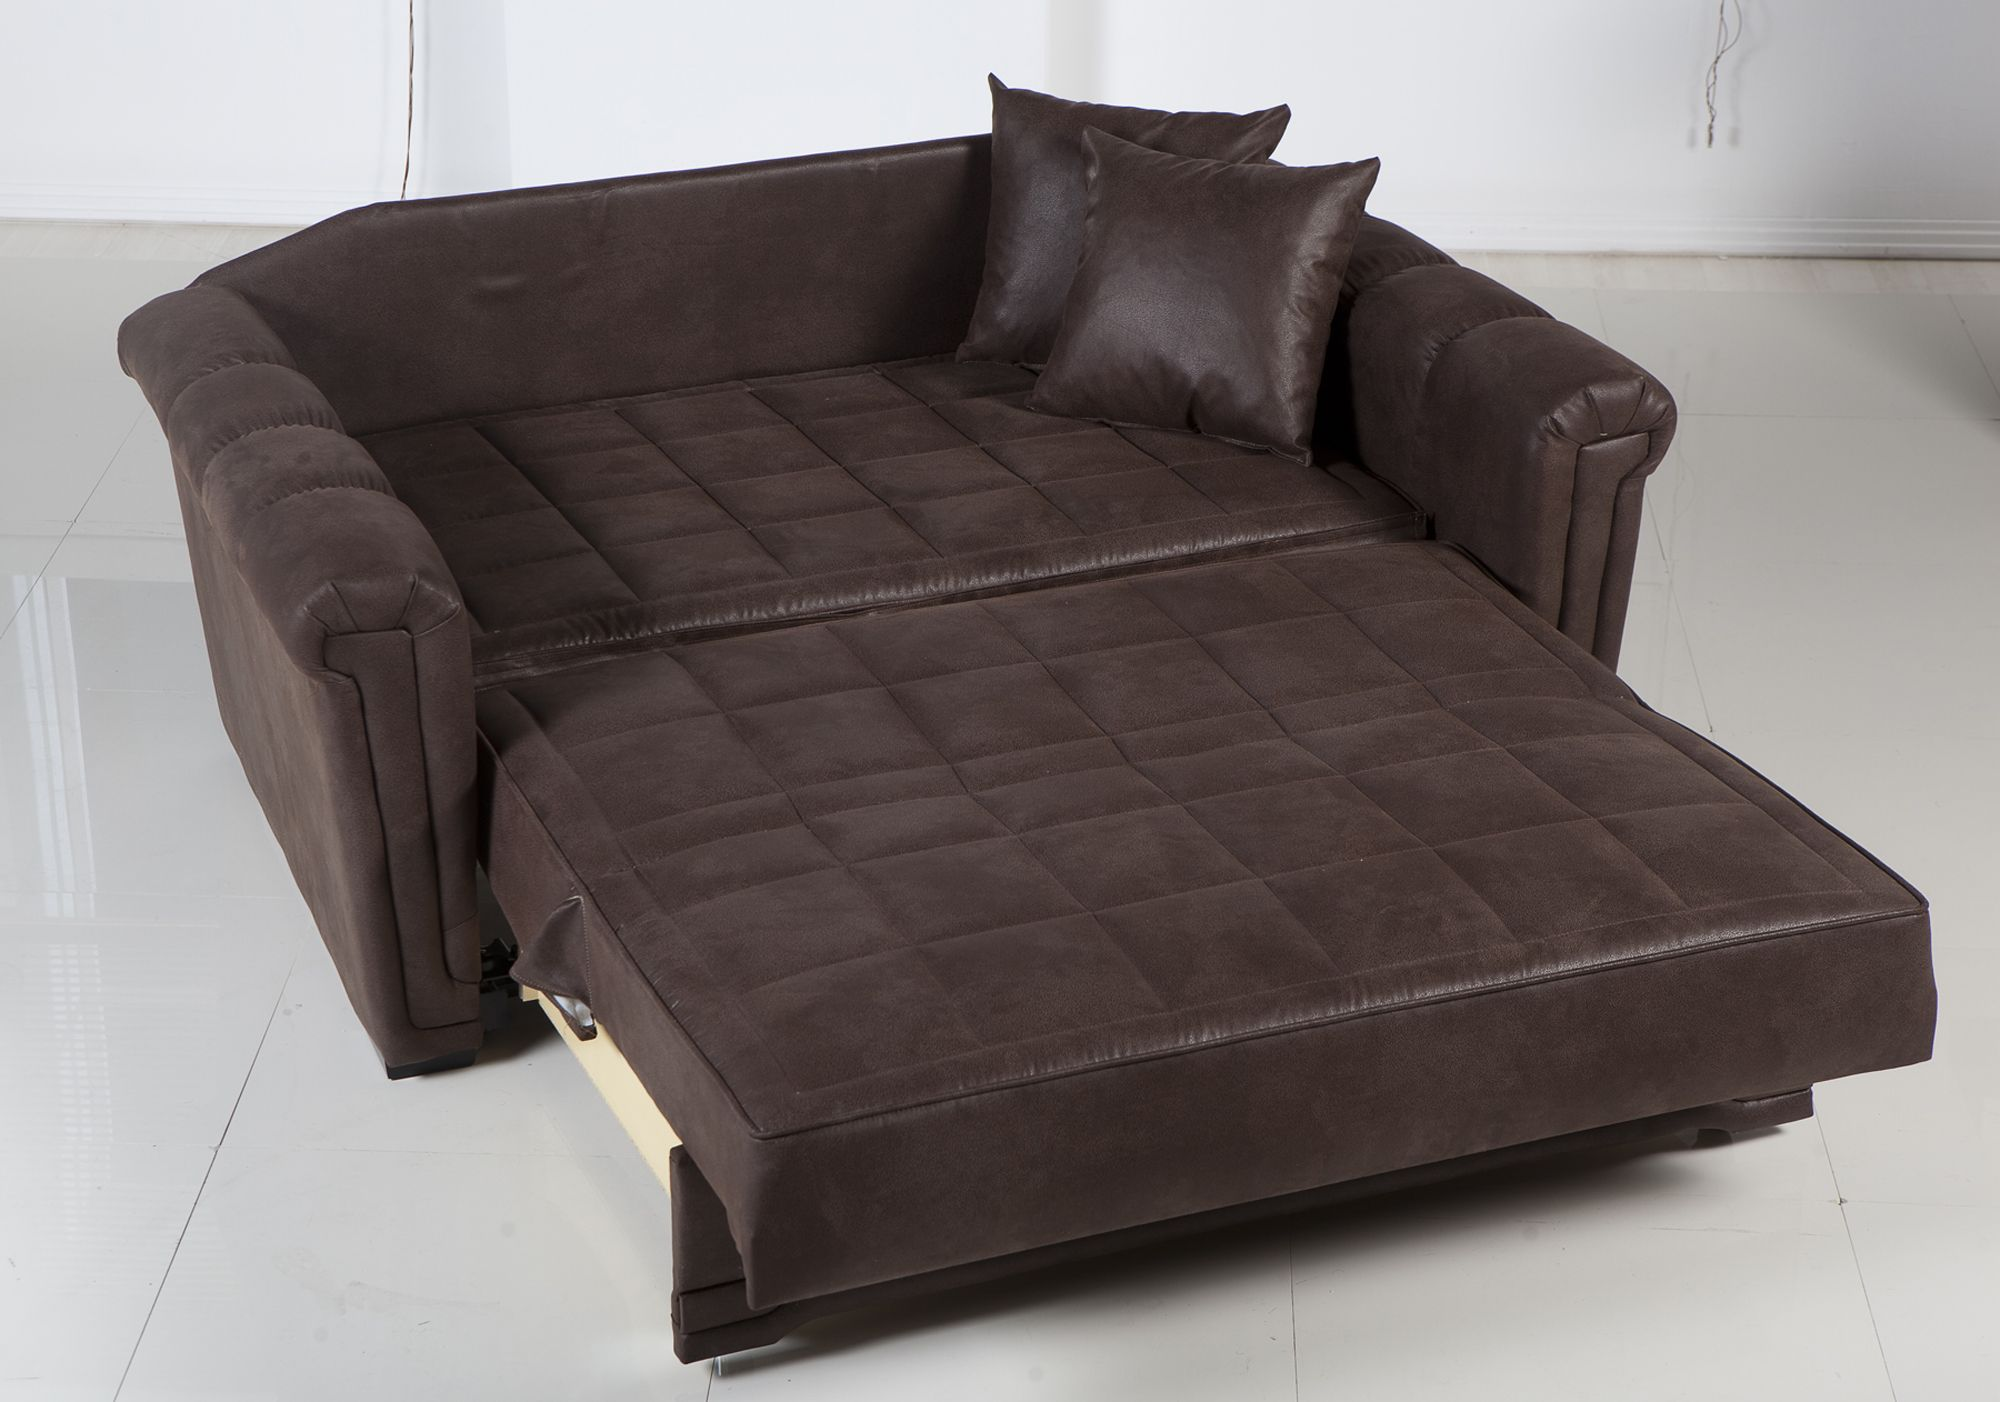 Awesome Loveseat Sleepers Epic 19 For Sofas And Couches Set With Http Sofascouch 45381 Check